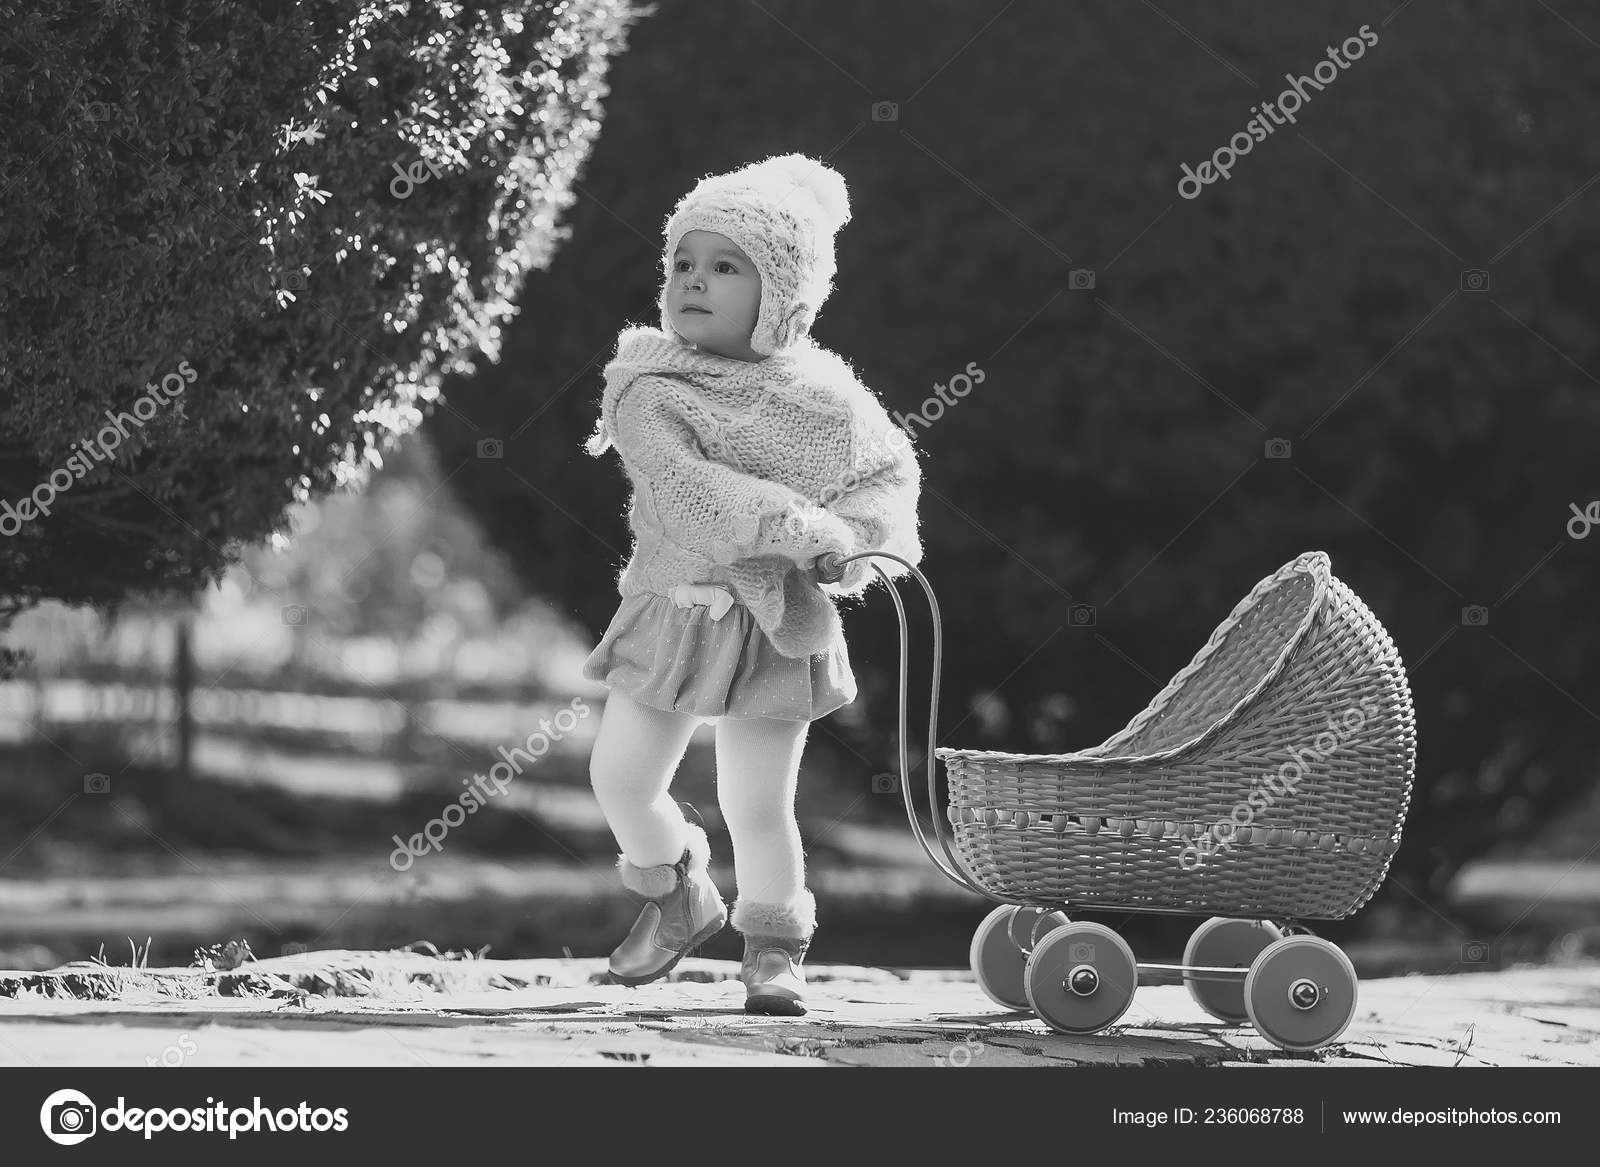 Vintage Toy Stroller Girl Walking With Vintage Doll Stroller On Sunny Day Stock